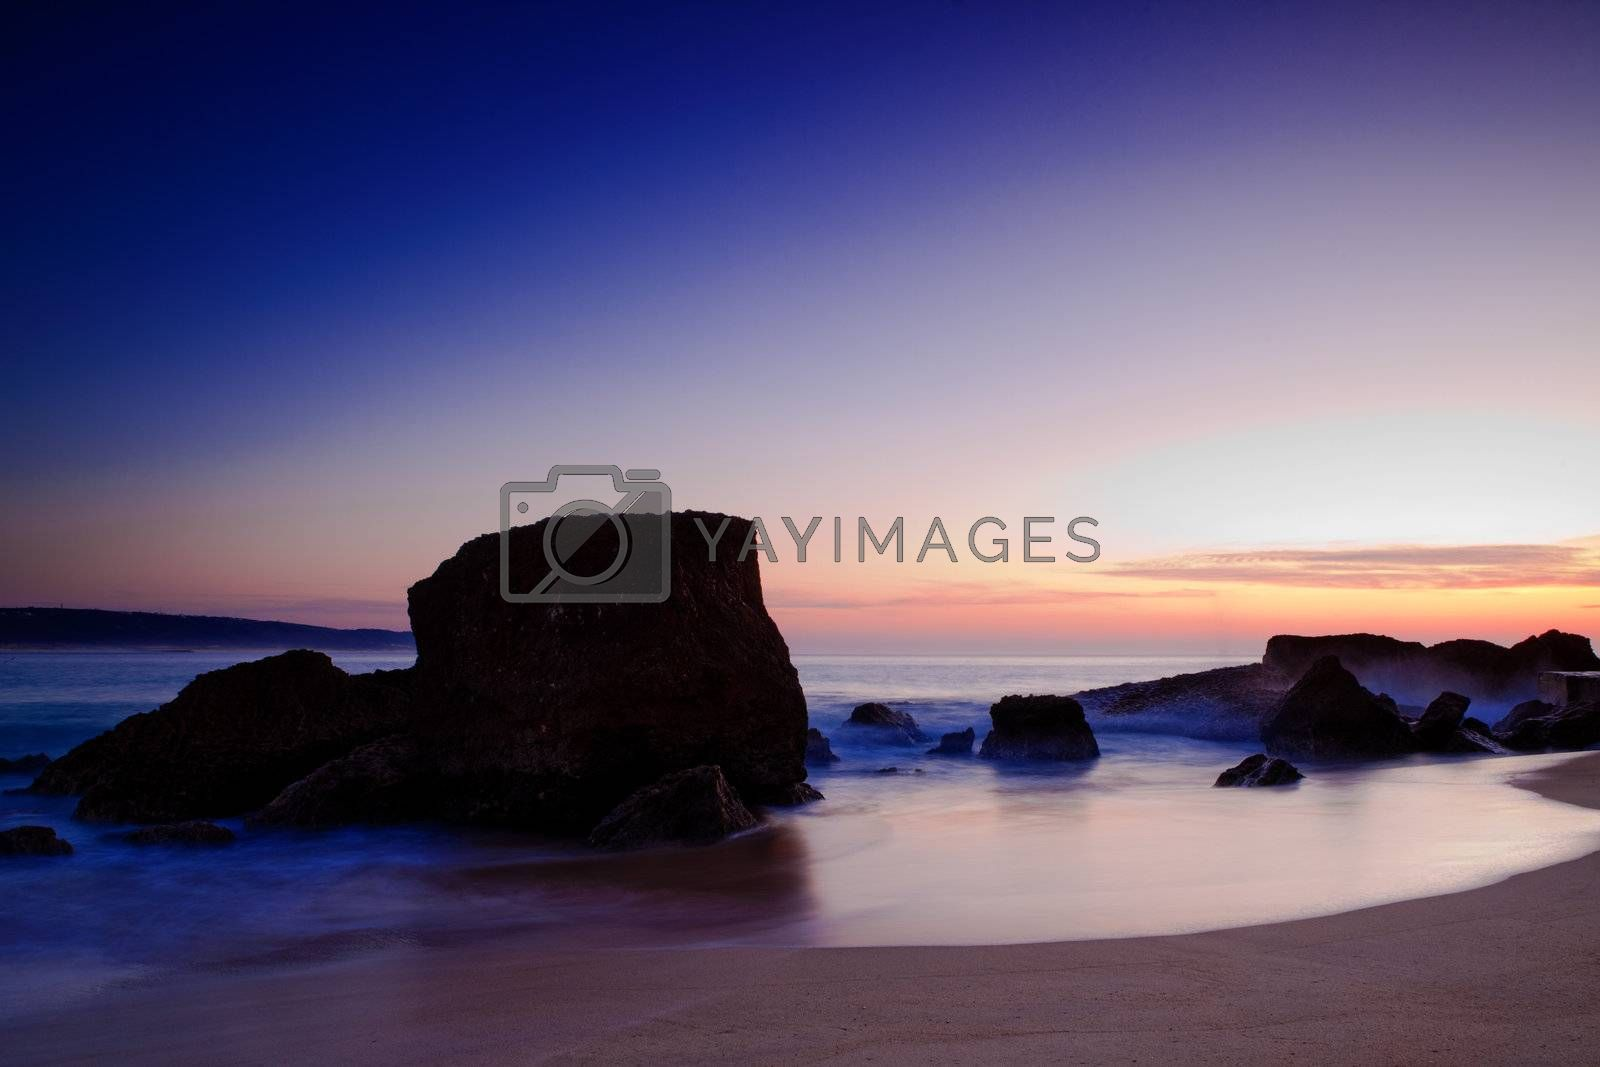 Royalty free image of Beach Landscape by Iko